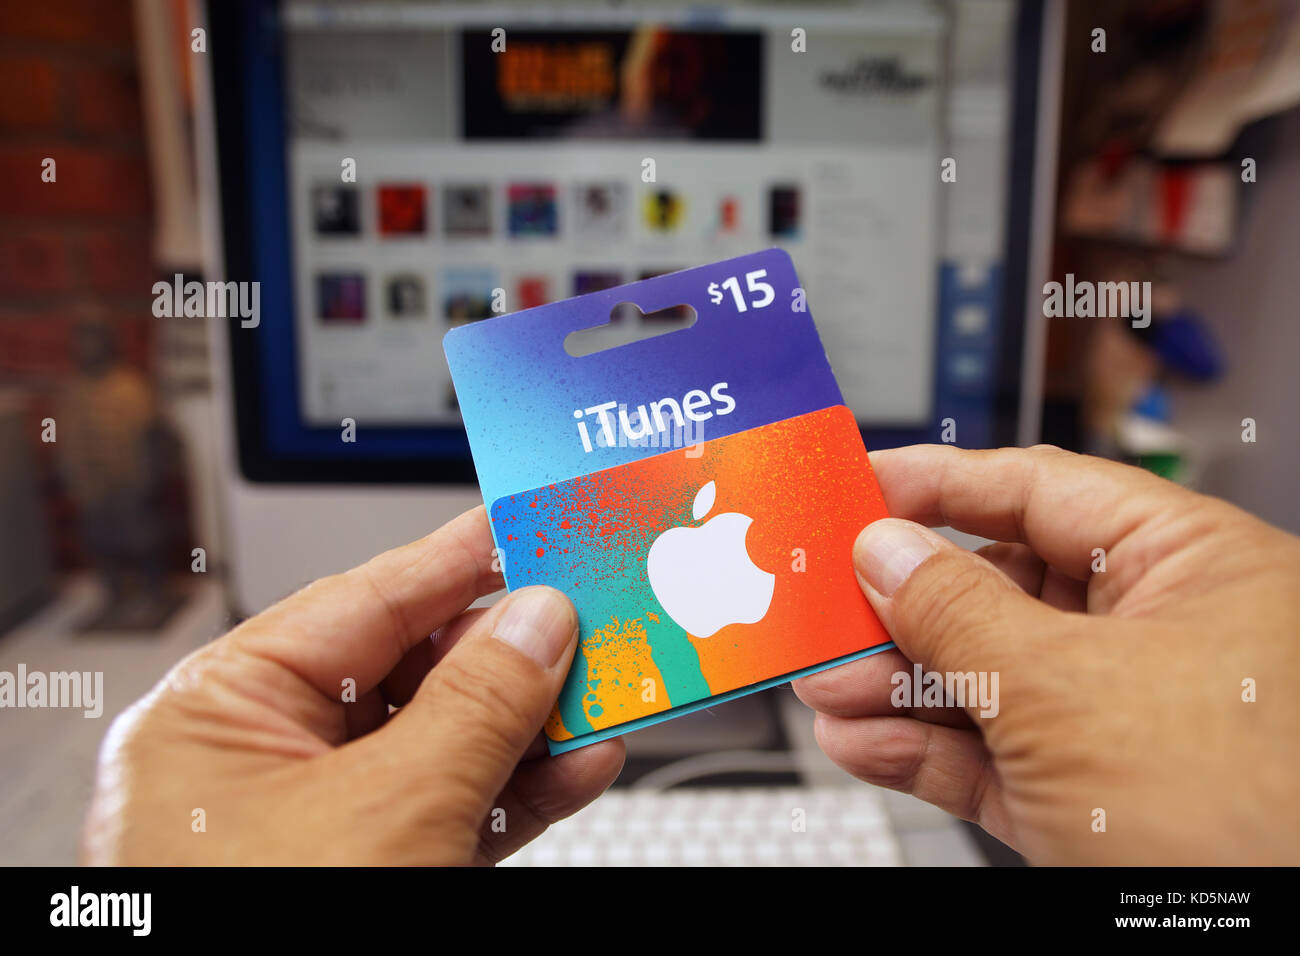 Hands holding a itunes gift card stock photo royalty free image hands holding a itunes gift card negle Images